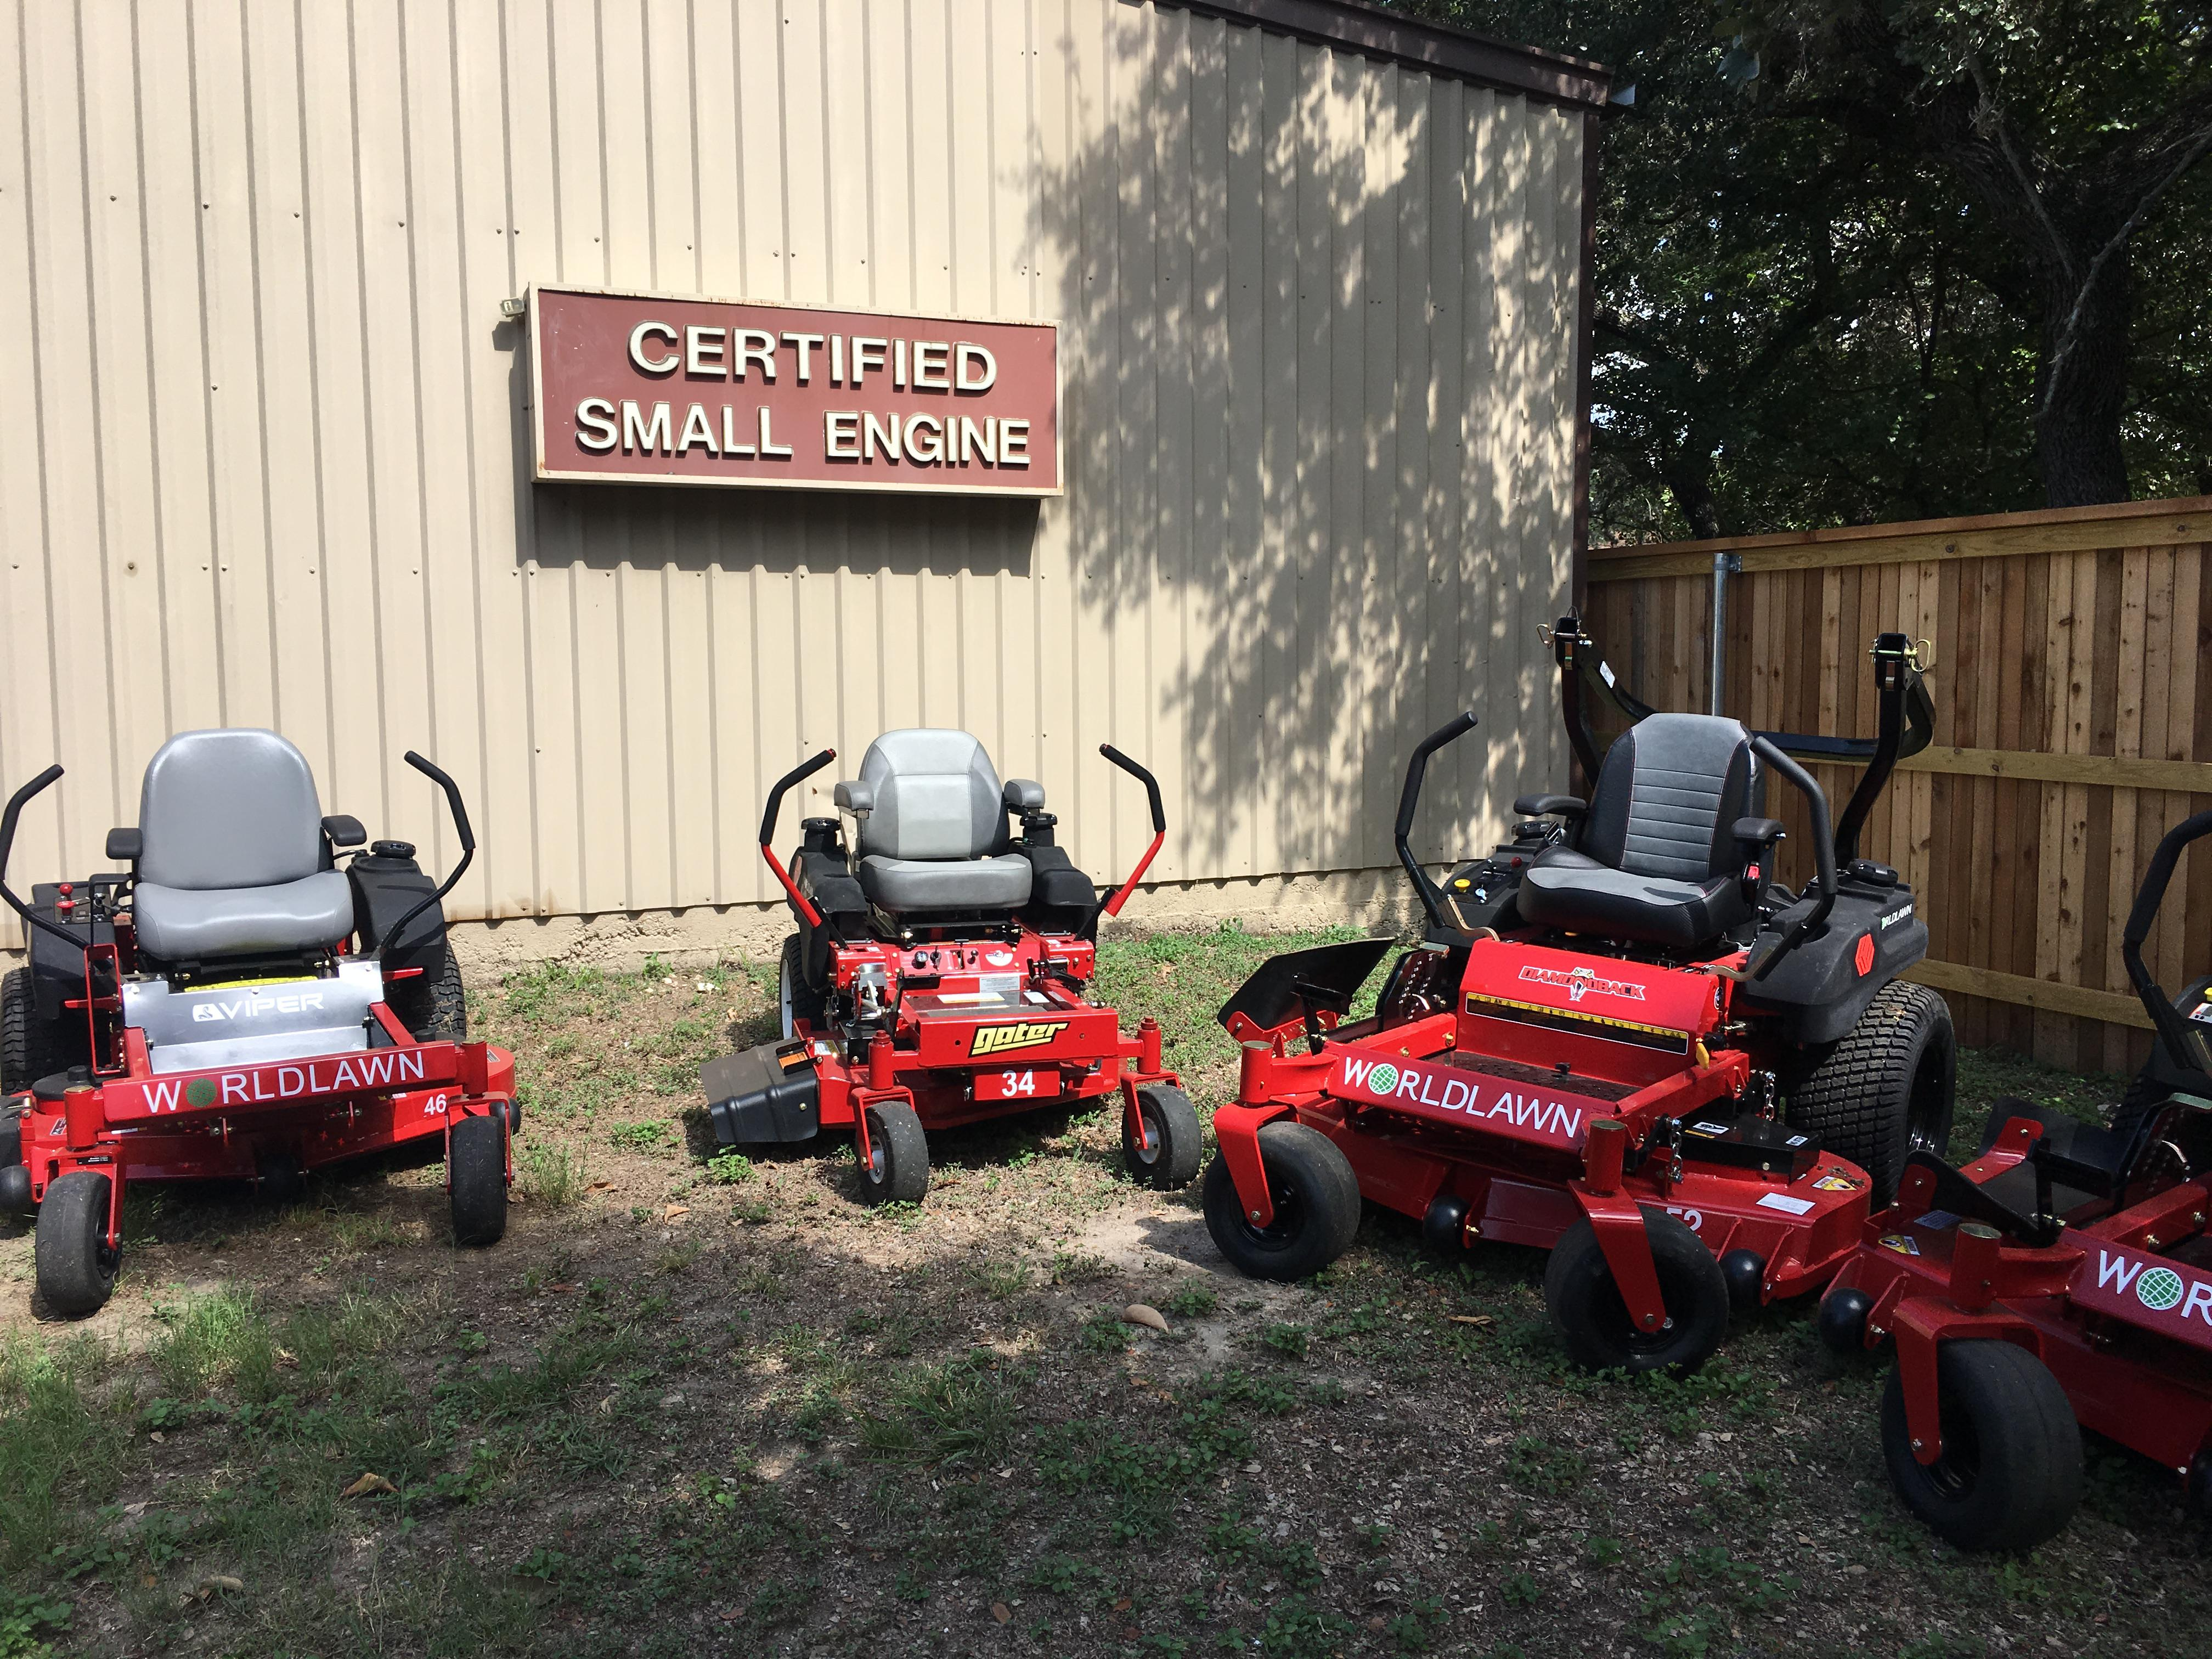 WORLD LAWN ZERO TURN MOWERS